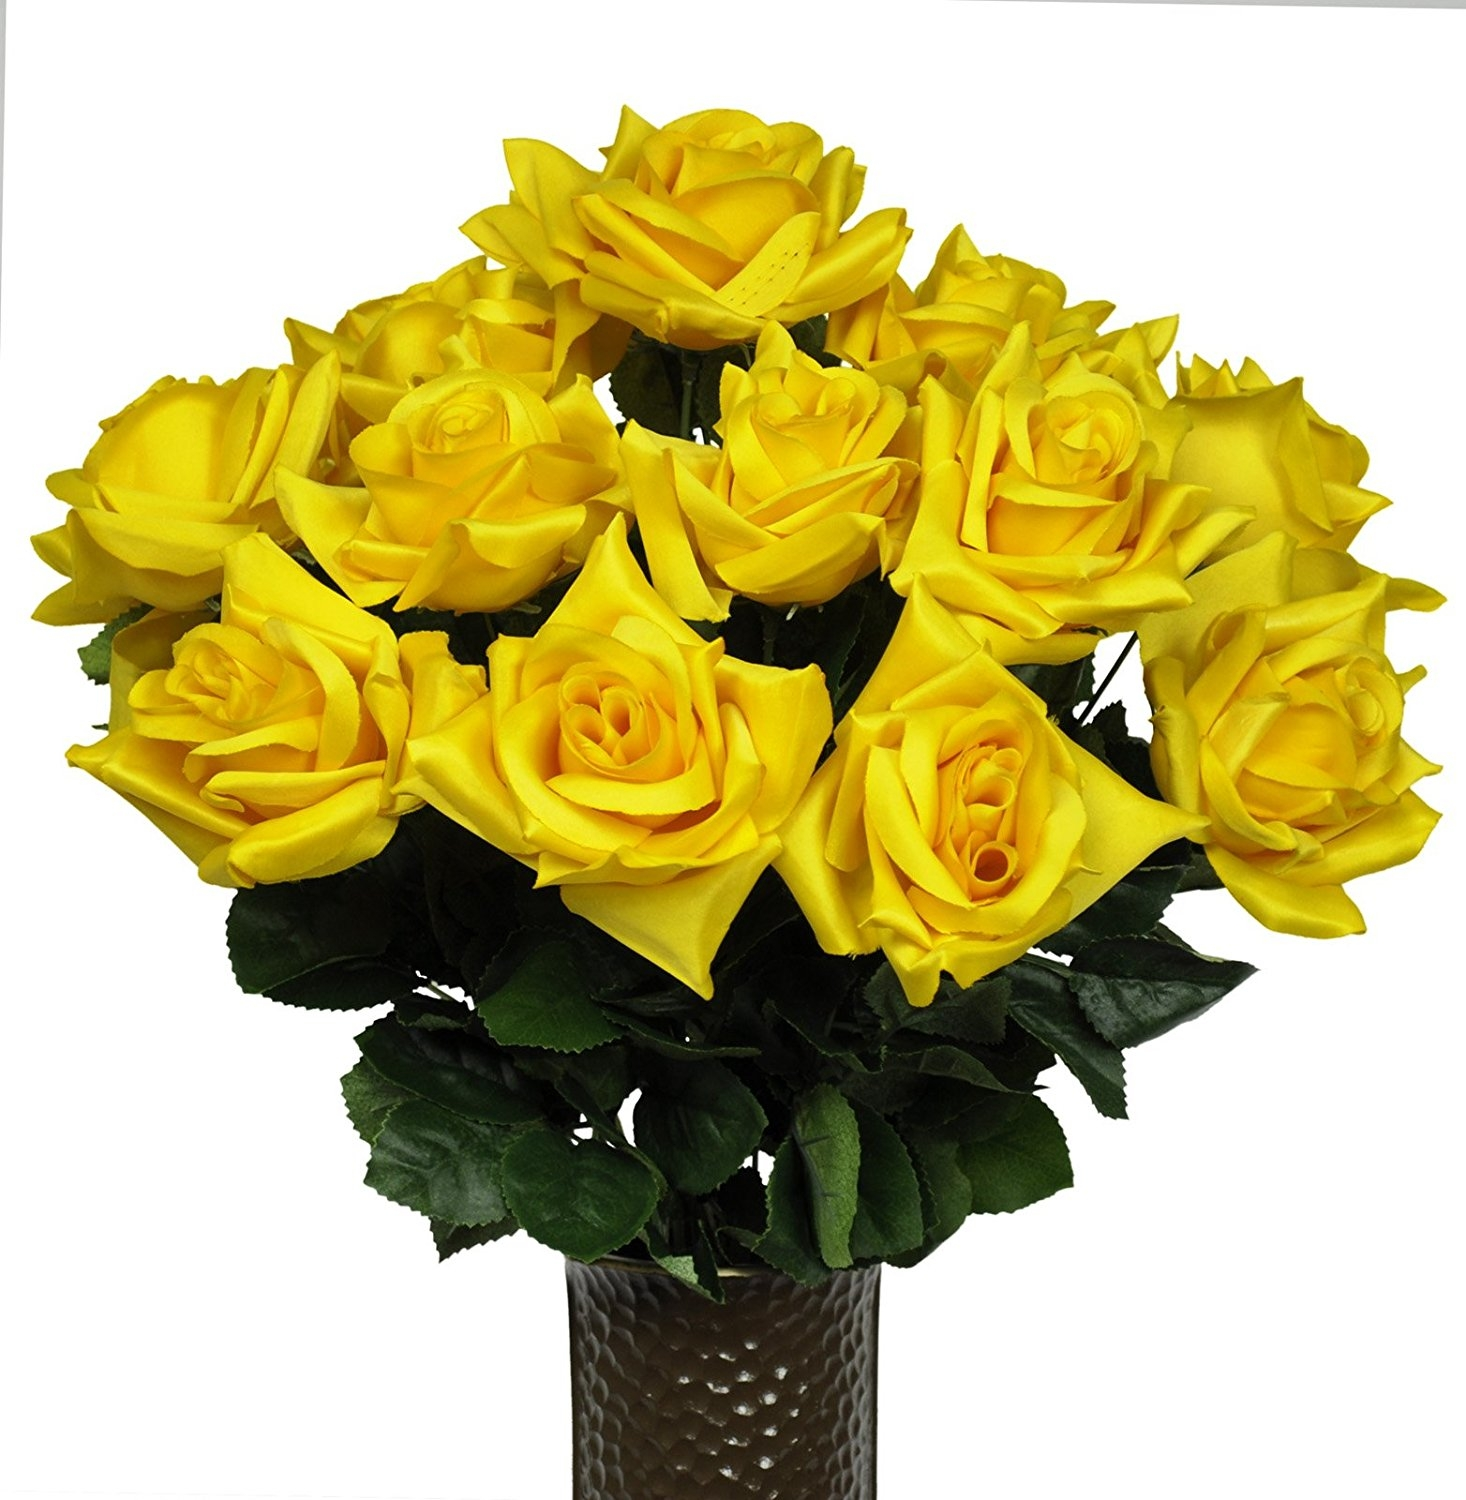 Yellow Diamond Rose Artificial Bouquet, featuring the Stay-In-The-Vase Design(c) Flower Holder (MD1341)